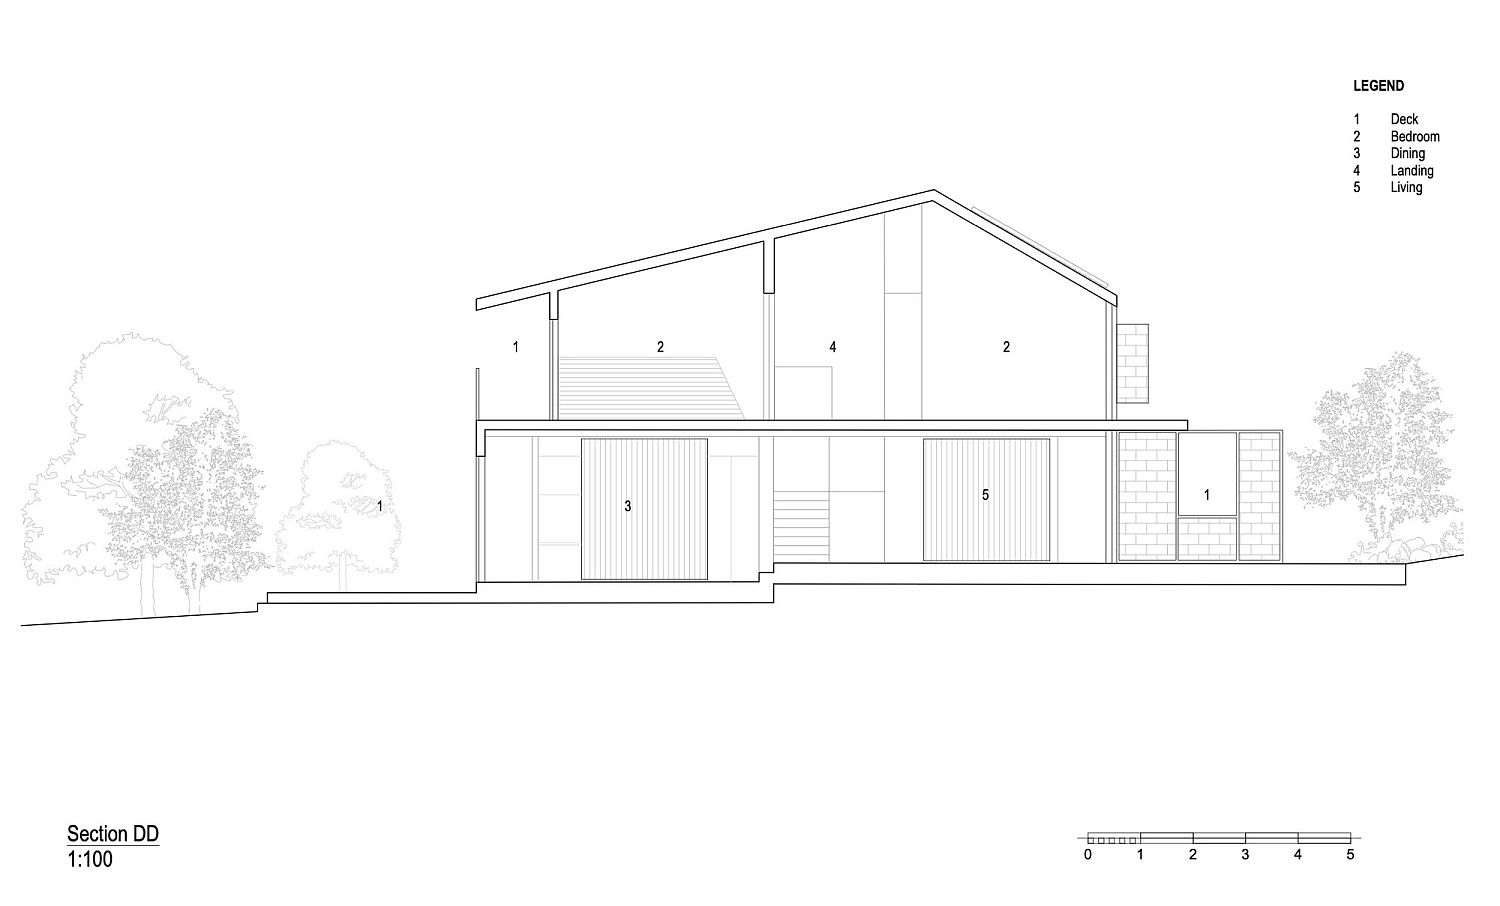 Design plan of the Stonewood house